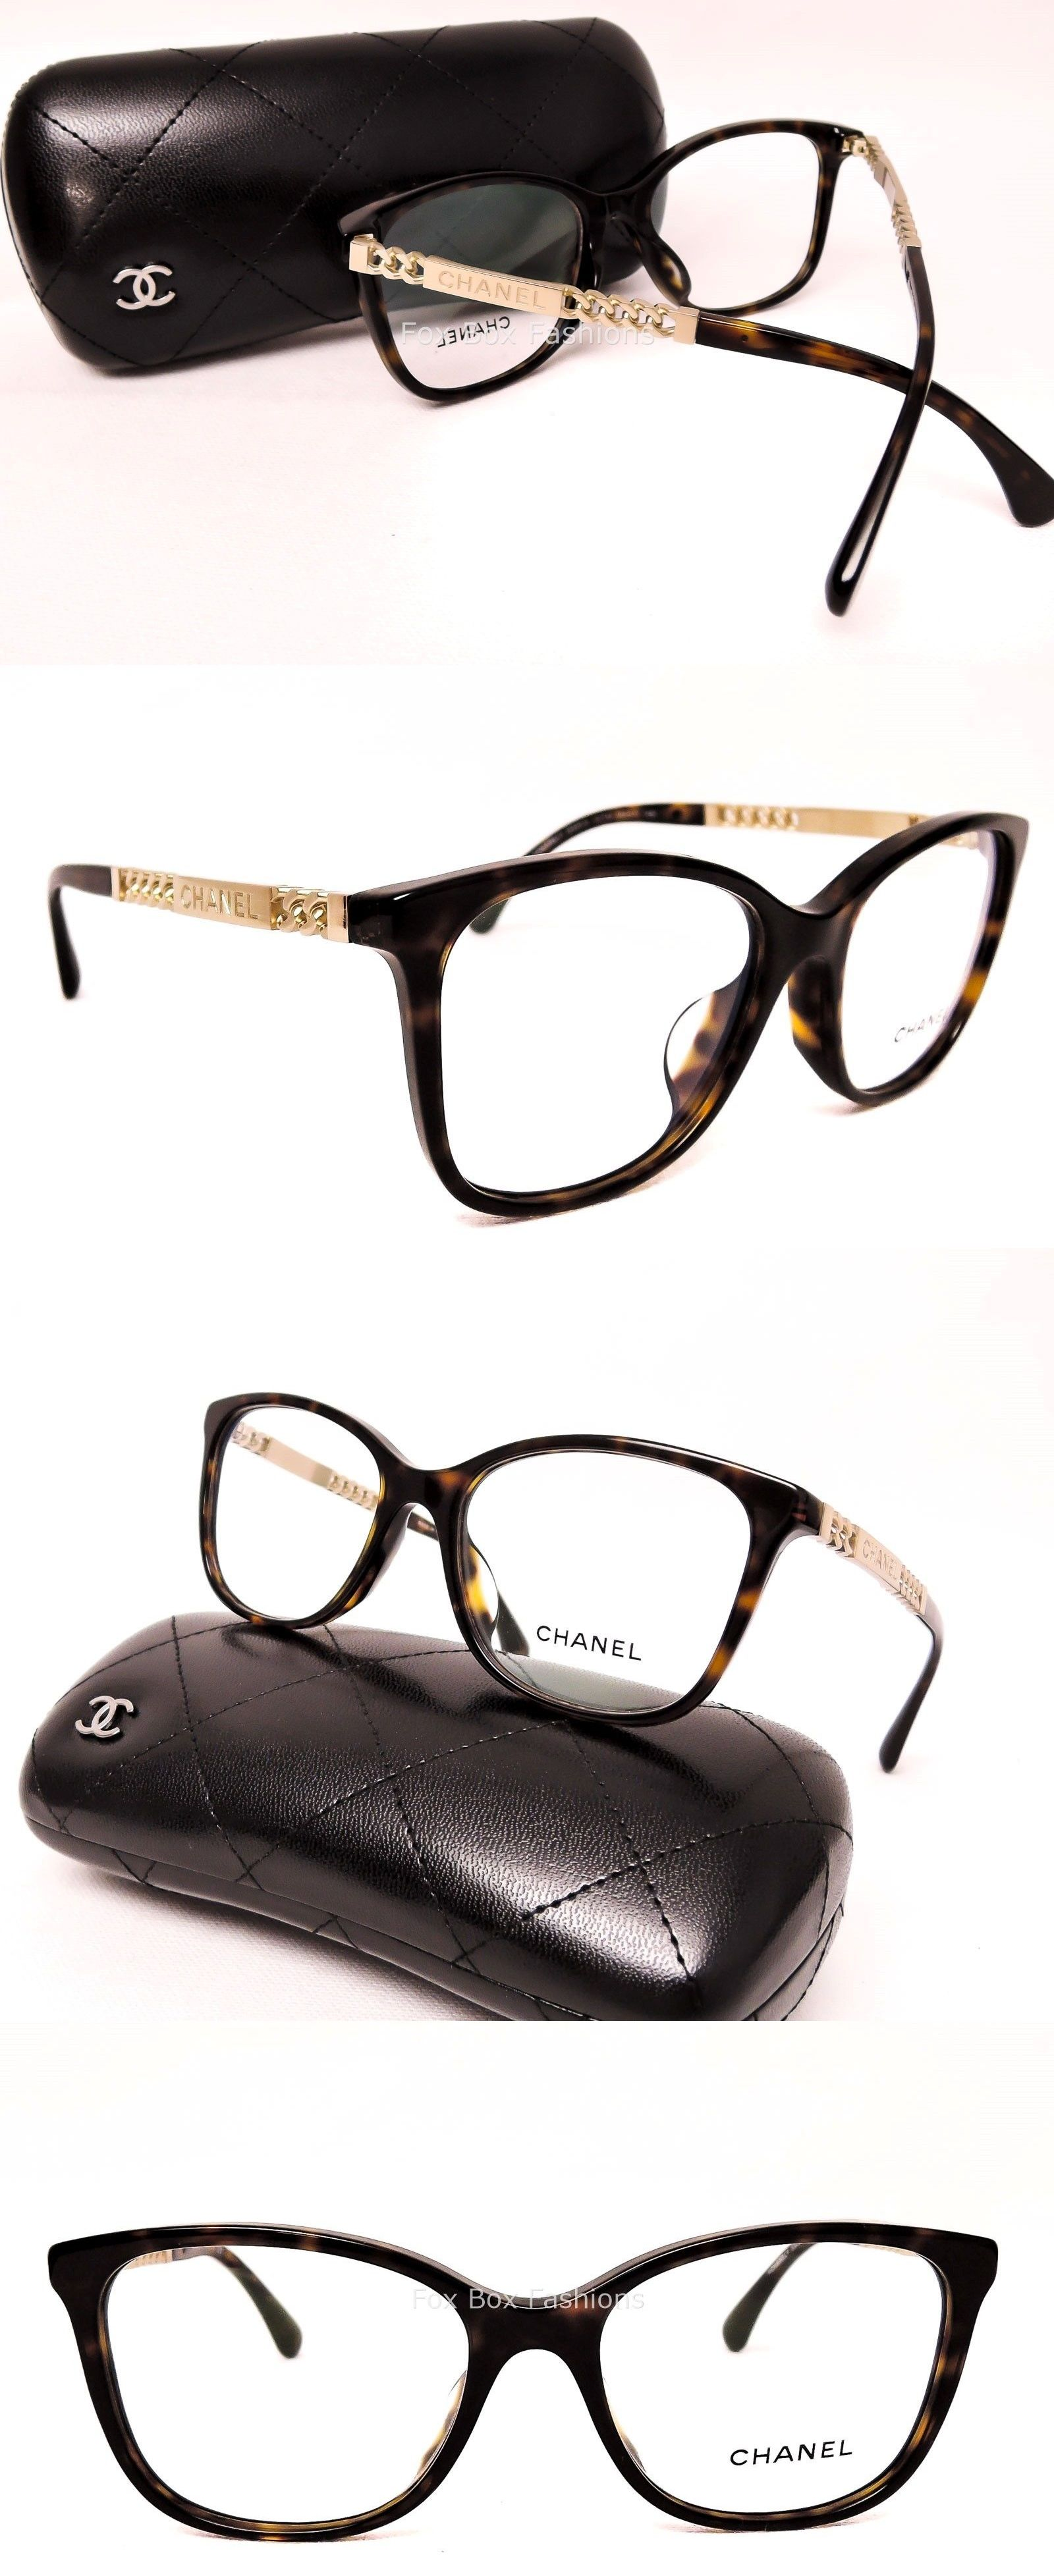 a7fbf185bbacc Eyeglass Frames  Chanel 3343-A 714 Eyeglasses Optical Frames Glasses  Tortoise Gold Chain 54Mm -  BUY IT NOW ONLY   148.95 on eBay!